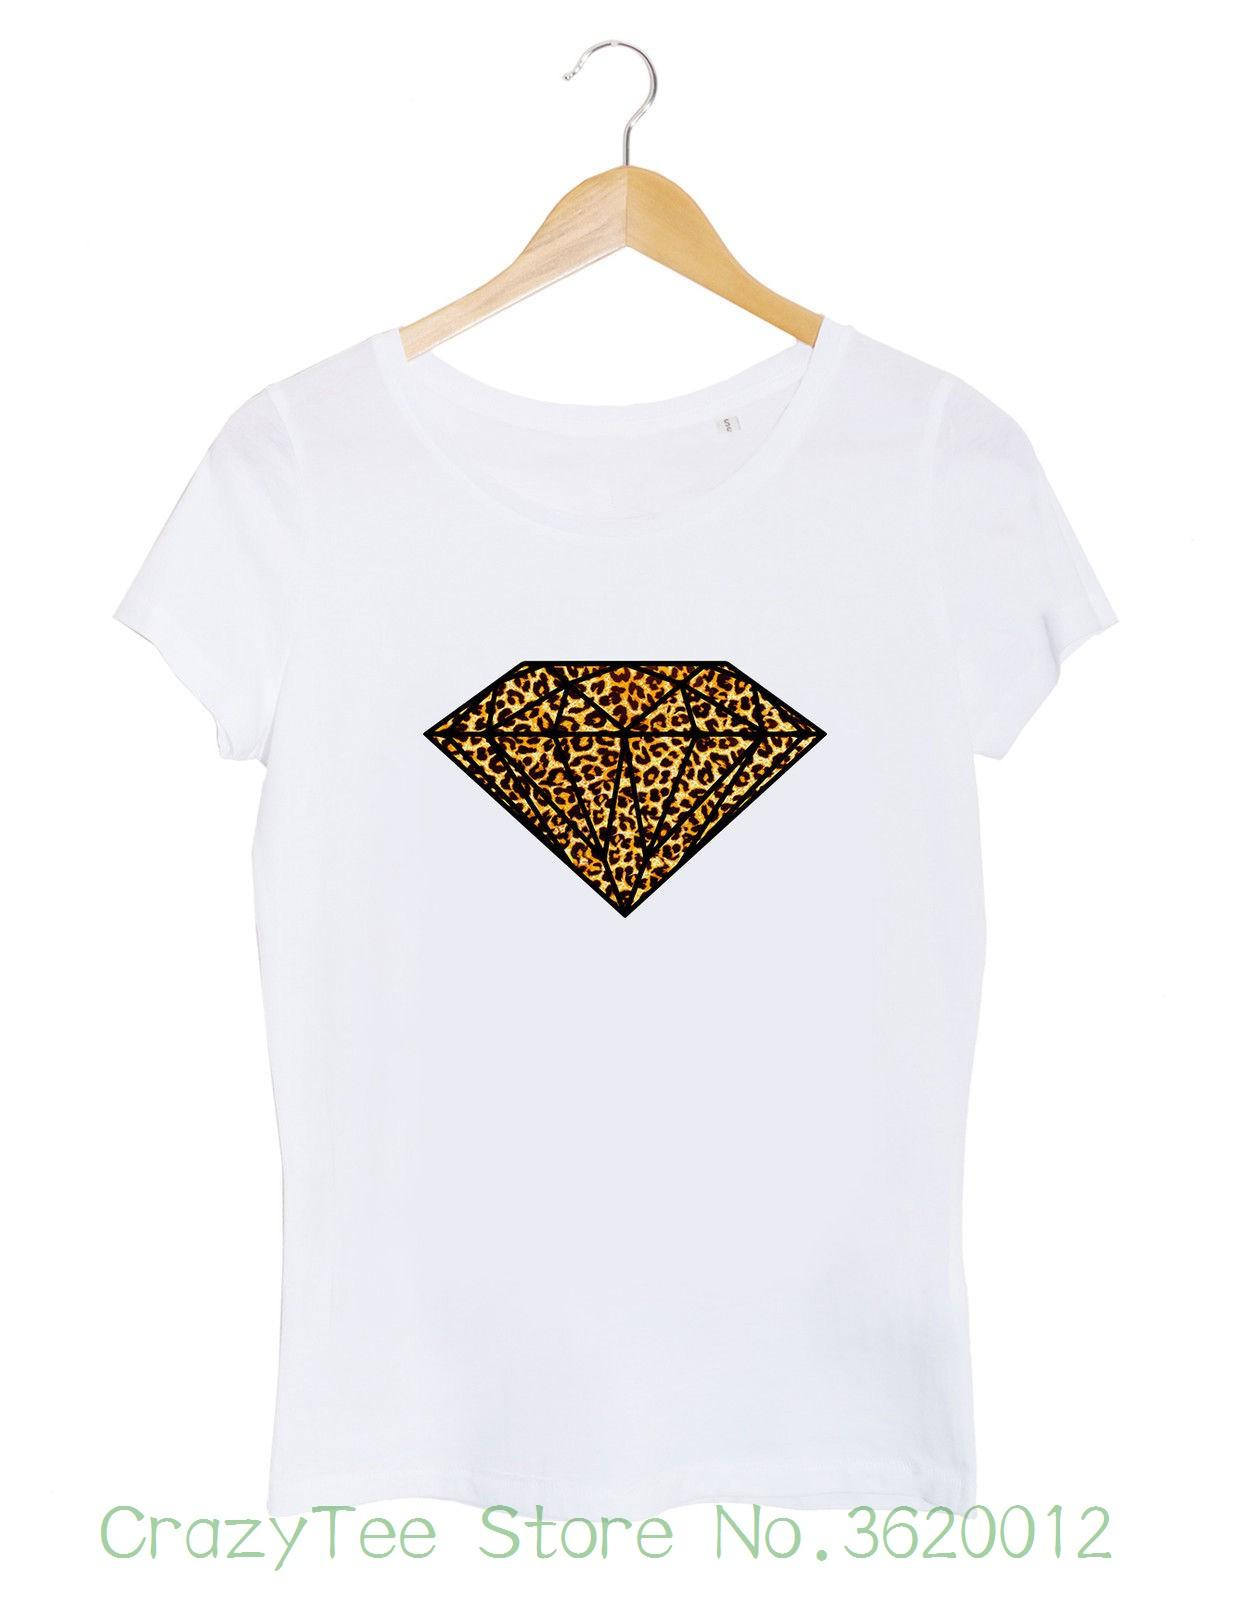 9a23f7169d05e Women s Tee T-shirt Femme Diamant Safari Tigre Afrique Animal Mode Blog  Beyonce Paris France New Arrival Summer Style Online with  14.72 Piece on  ...